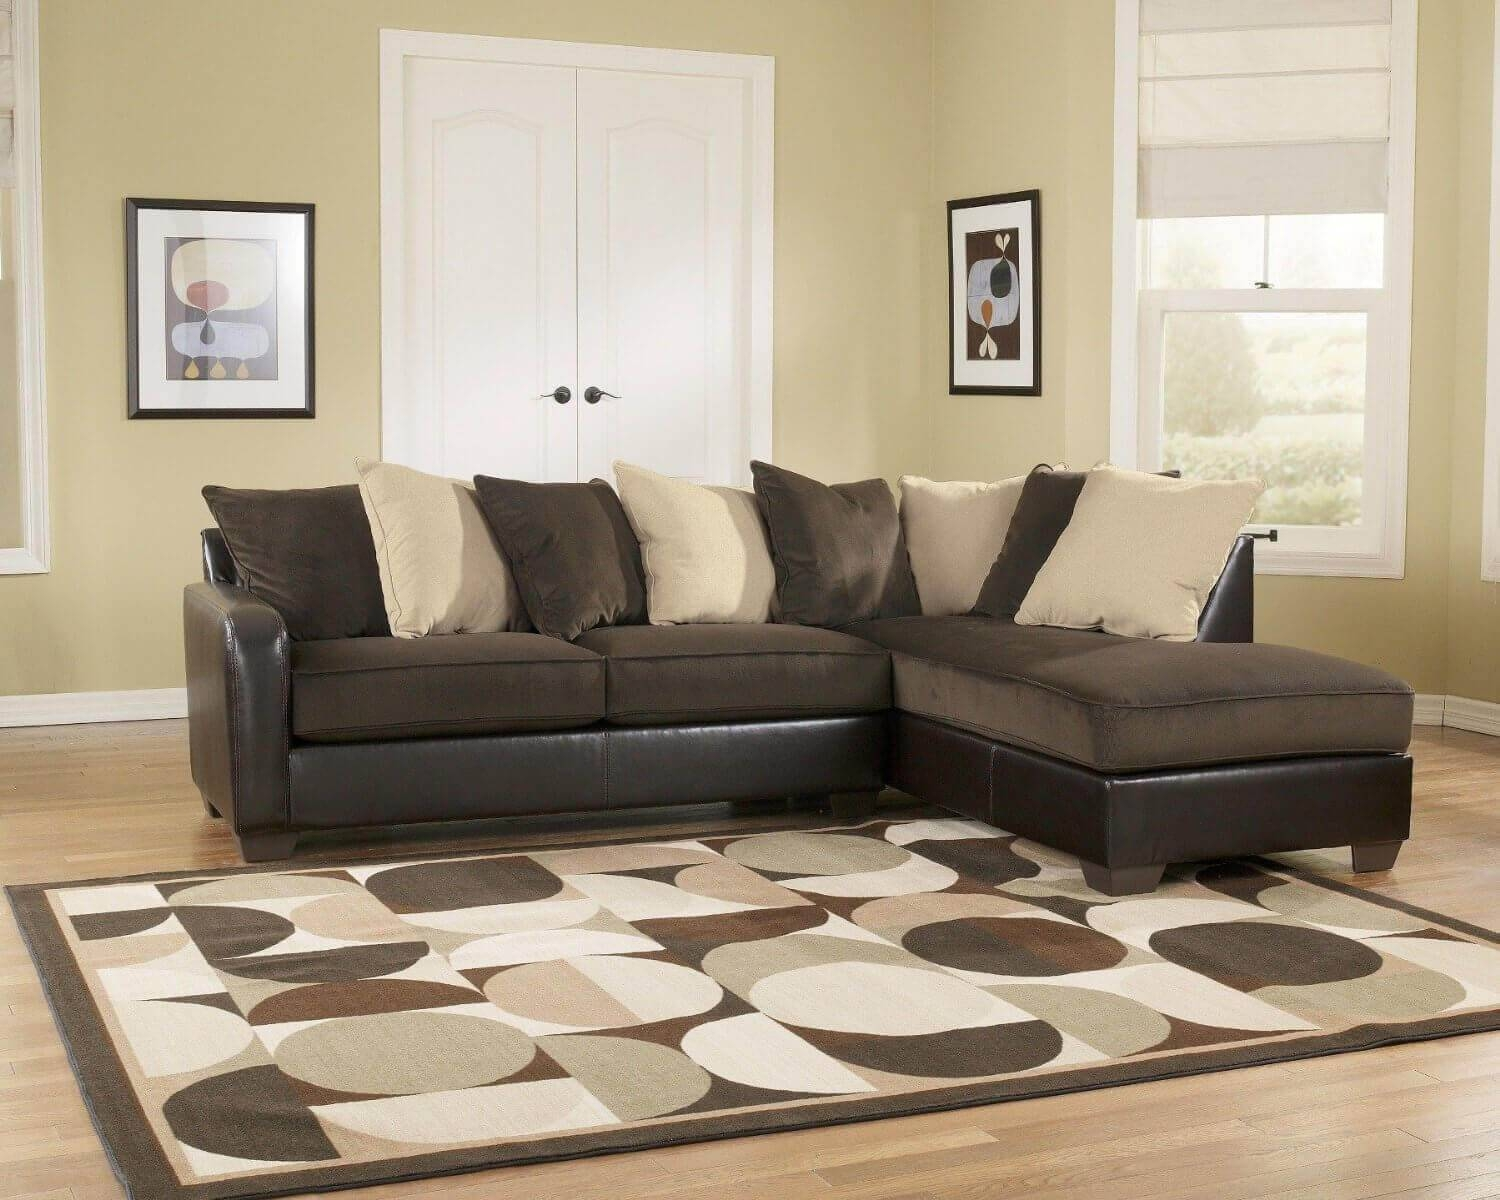 Fancy Green Sectional Sofa With Chaise 52 With Additional Faux throughout Faux Leather Sectional Sofas (Image 9 of 25)